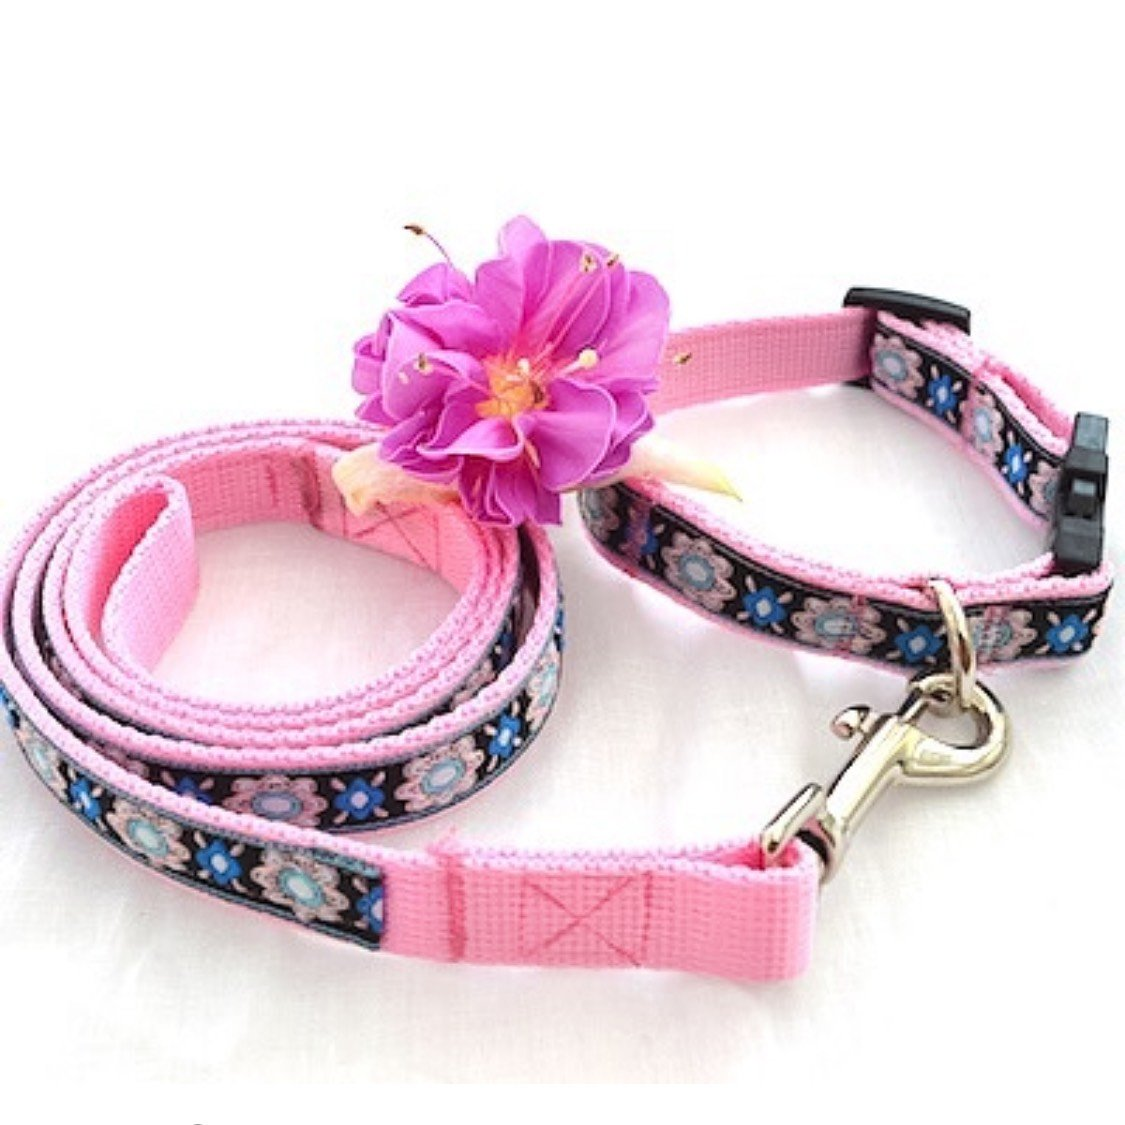 Smart dogs boutique dog accessories